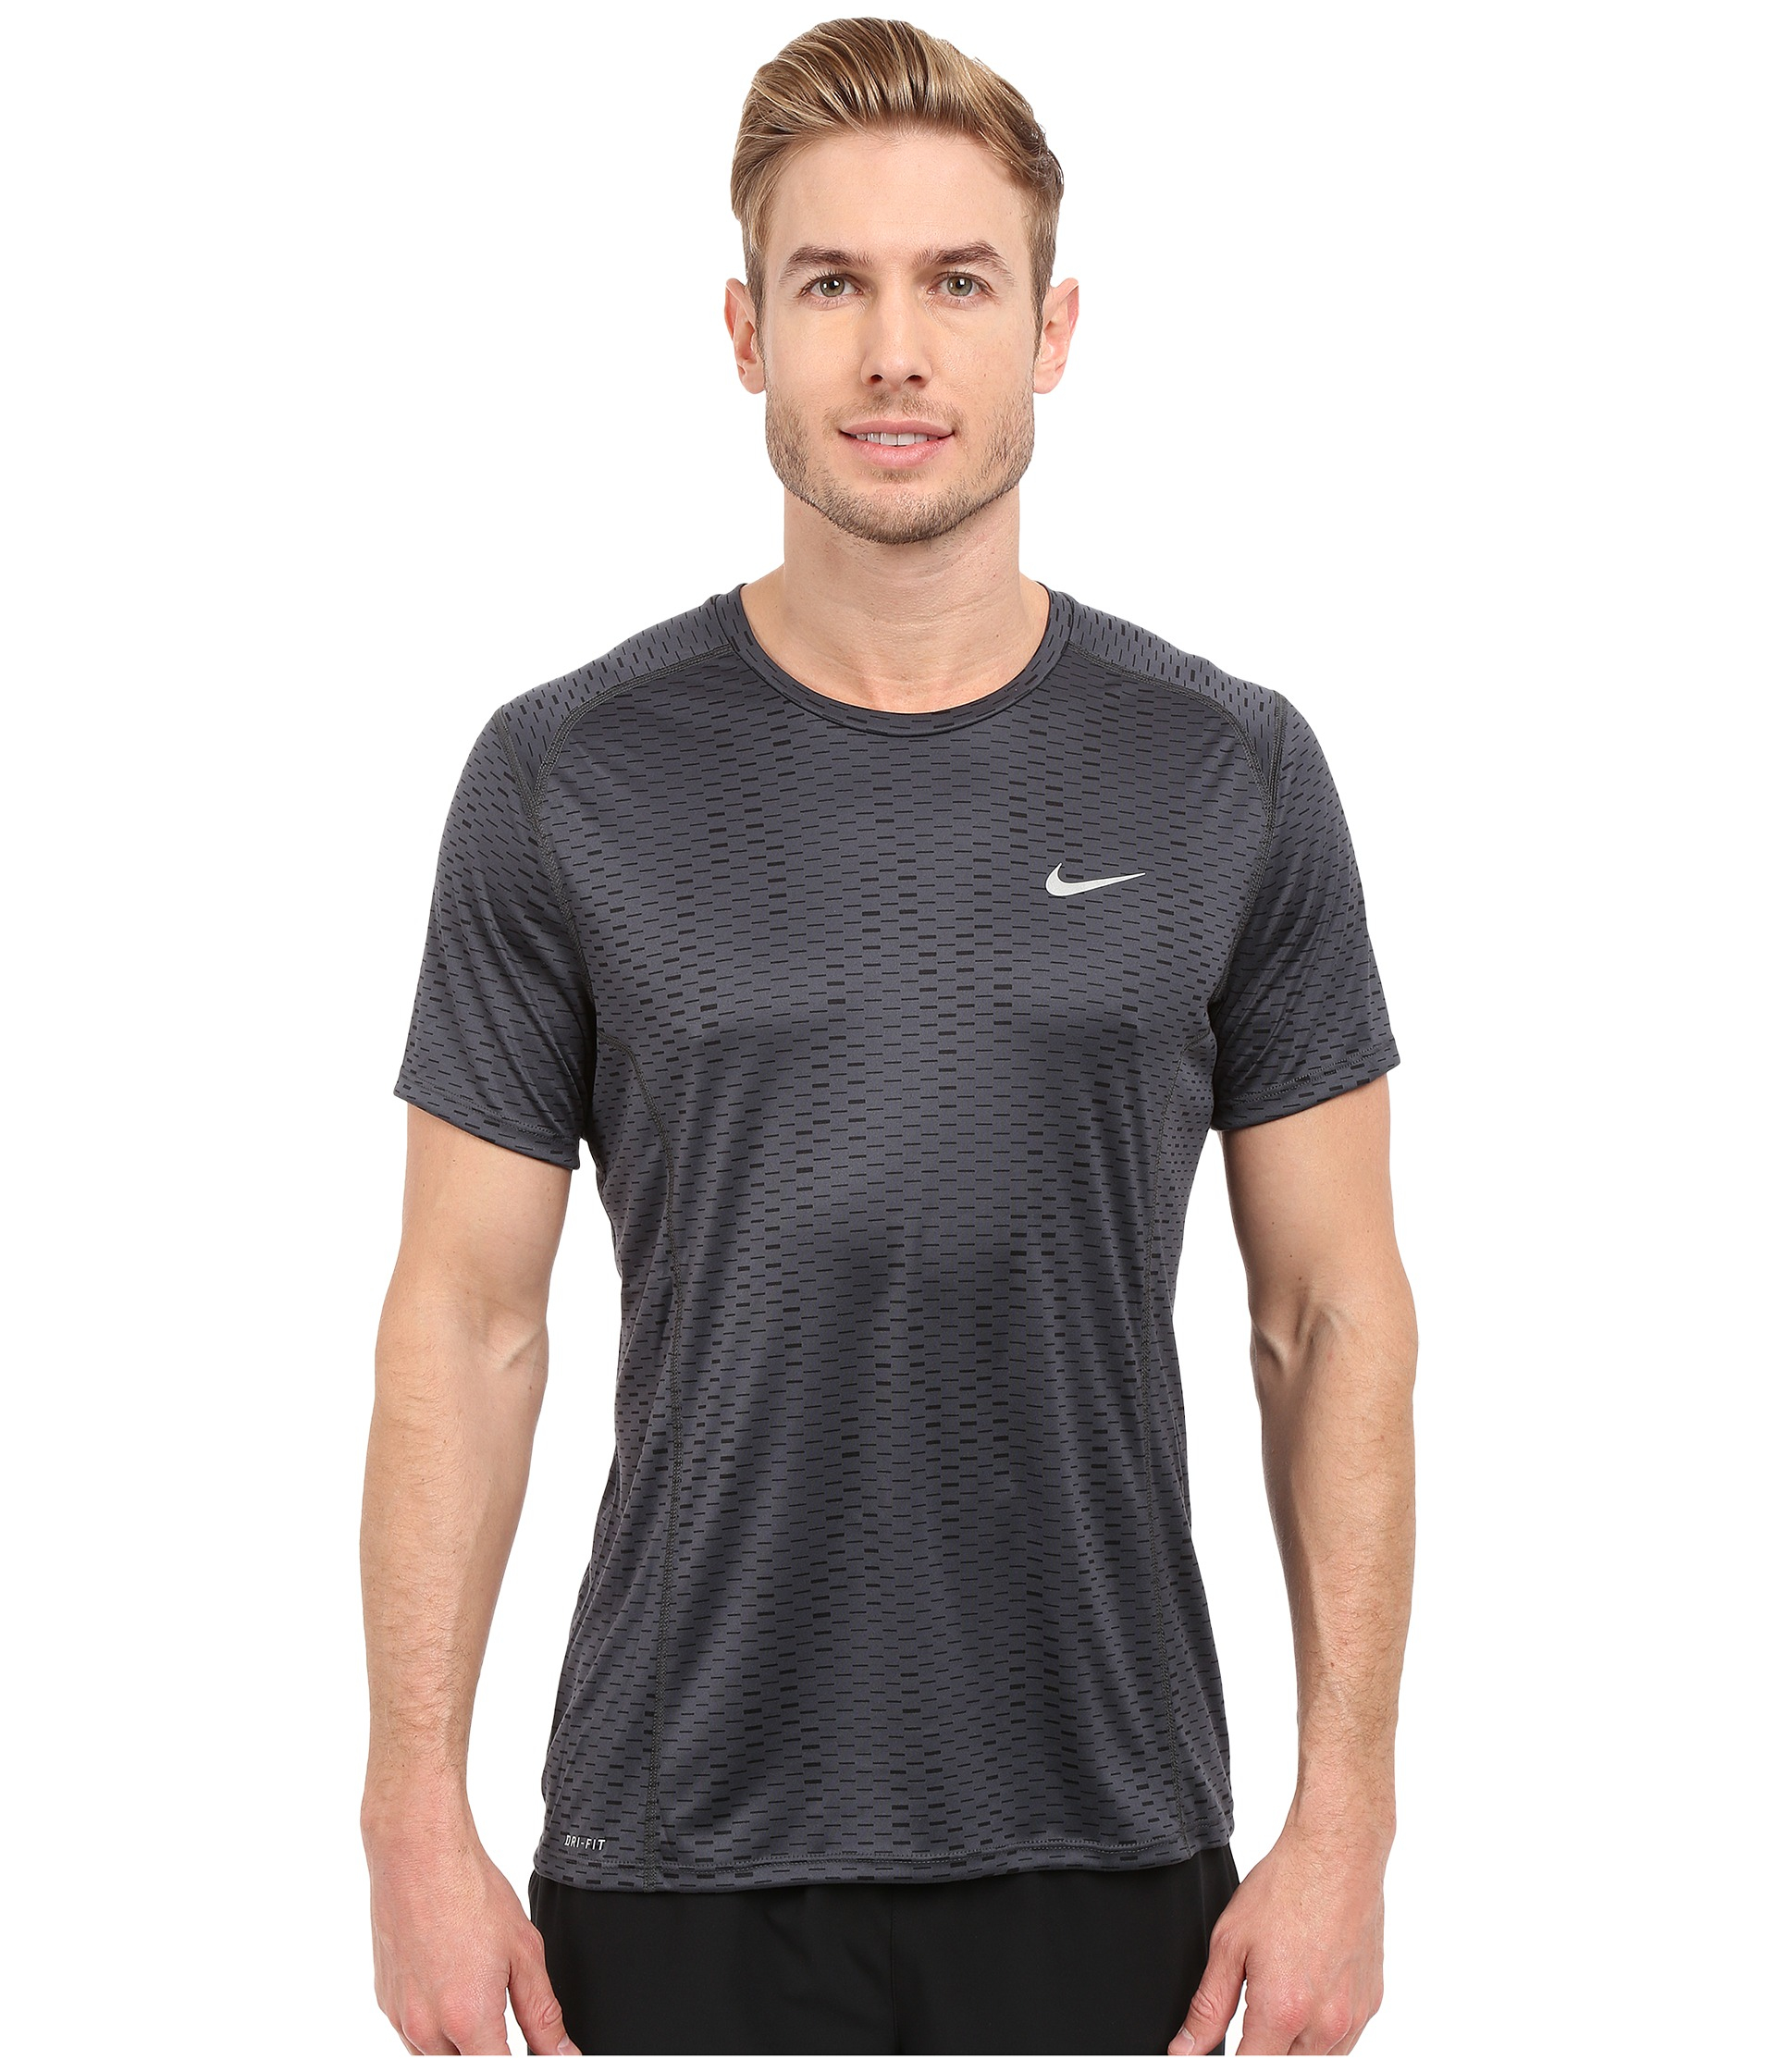 Nike dri fit miler fuse running shirt in gray for men lyst for Running dri fit shirts